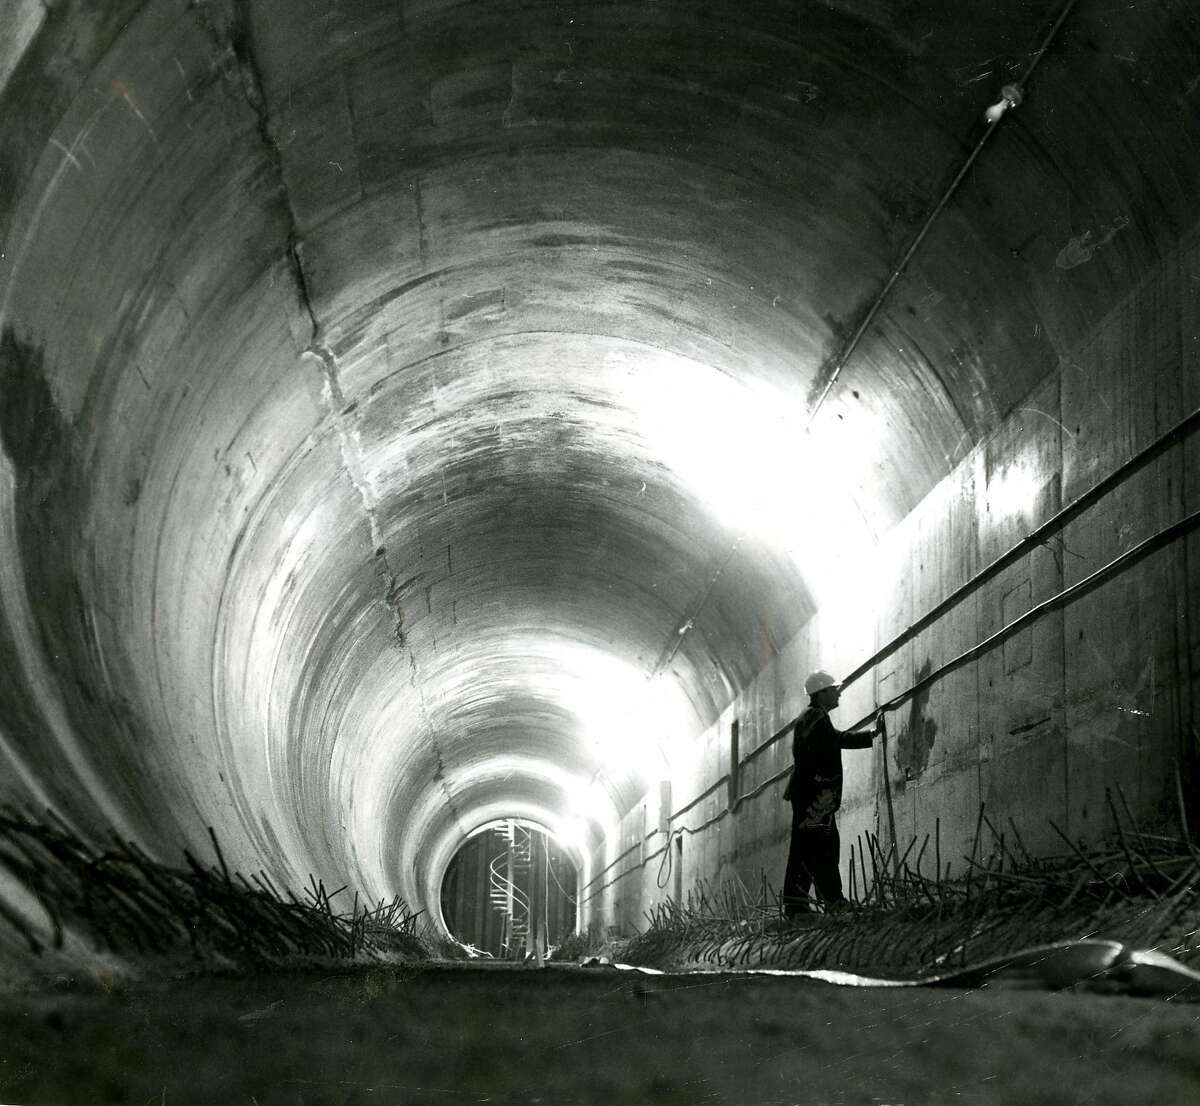 The last tube section of the Transbay Tube was laid down in April of 1969. The first test train wouldn't actually go through the Tube until August of 1973. In August of 1969, with the tube connected but not yet operational, BART allowed the public to